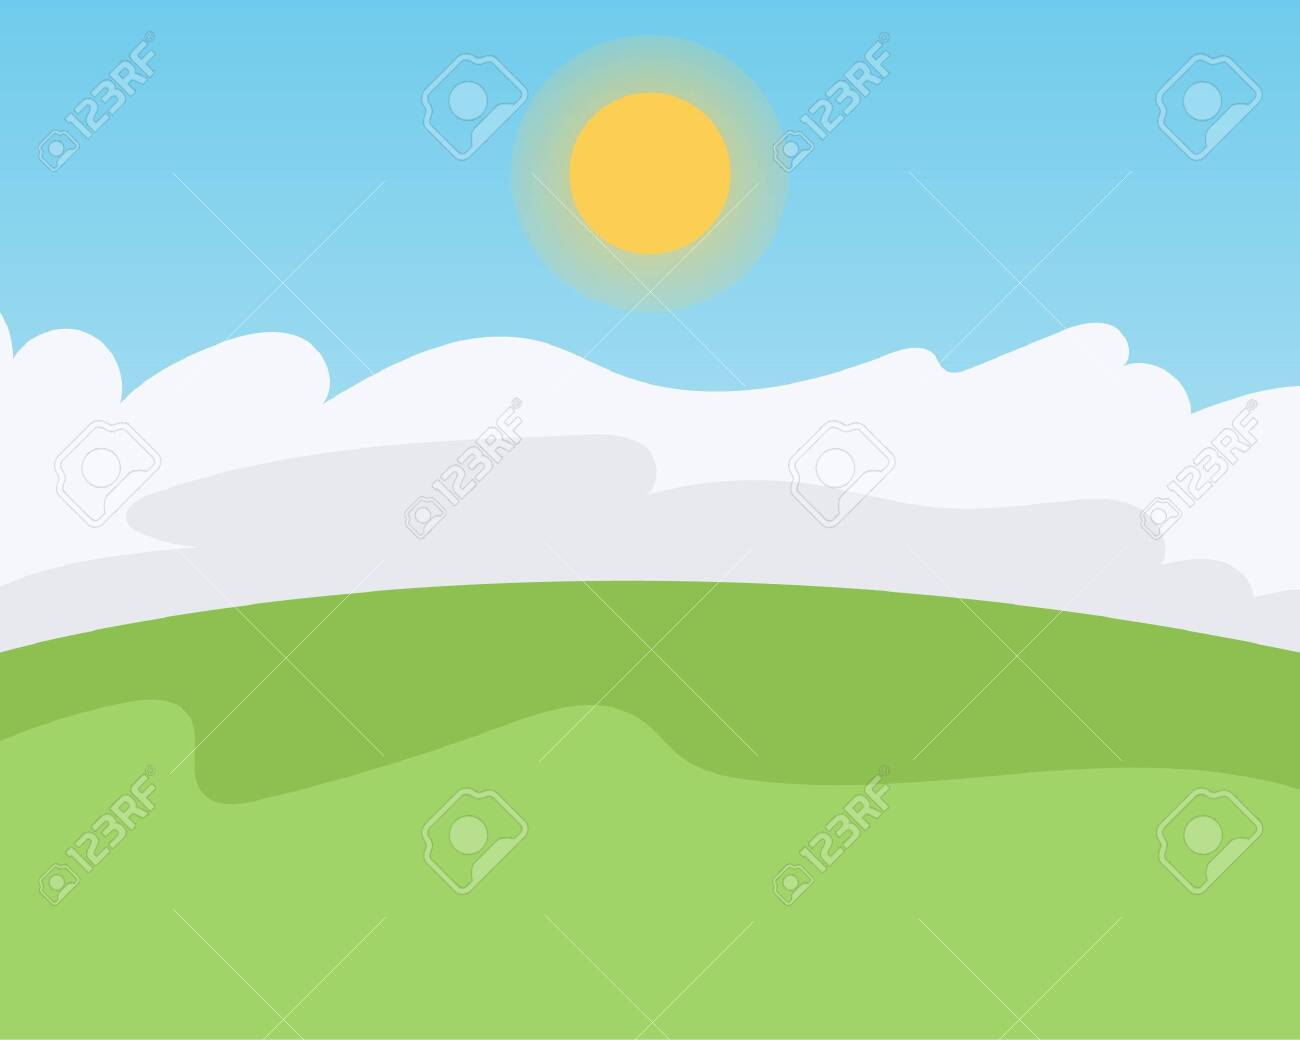 Green field, Clouds, Sky and Sun, Vector illustration - 120859298